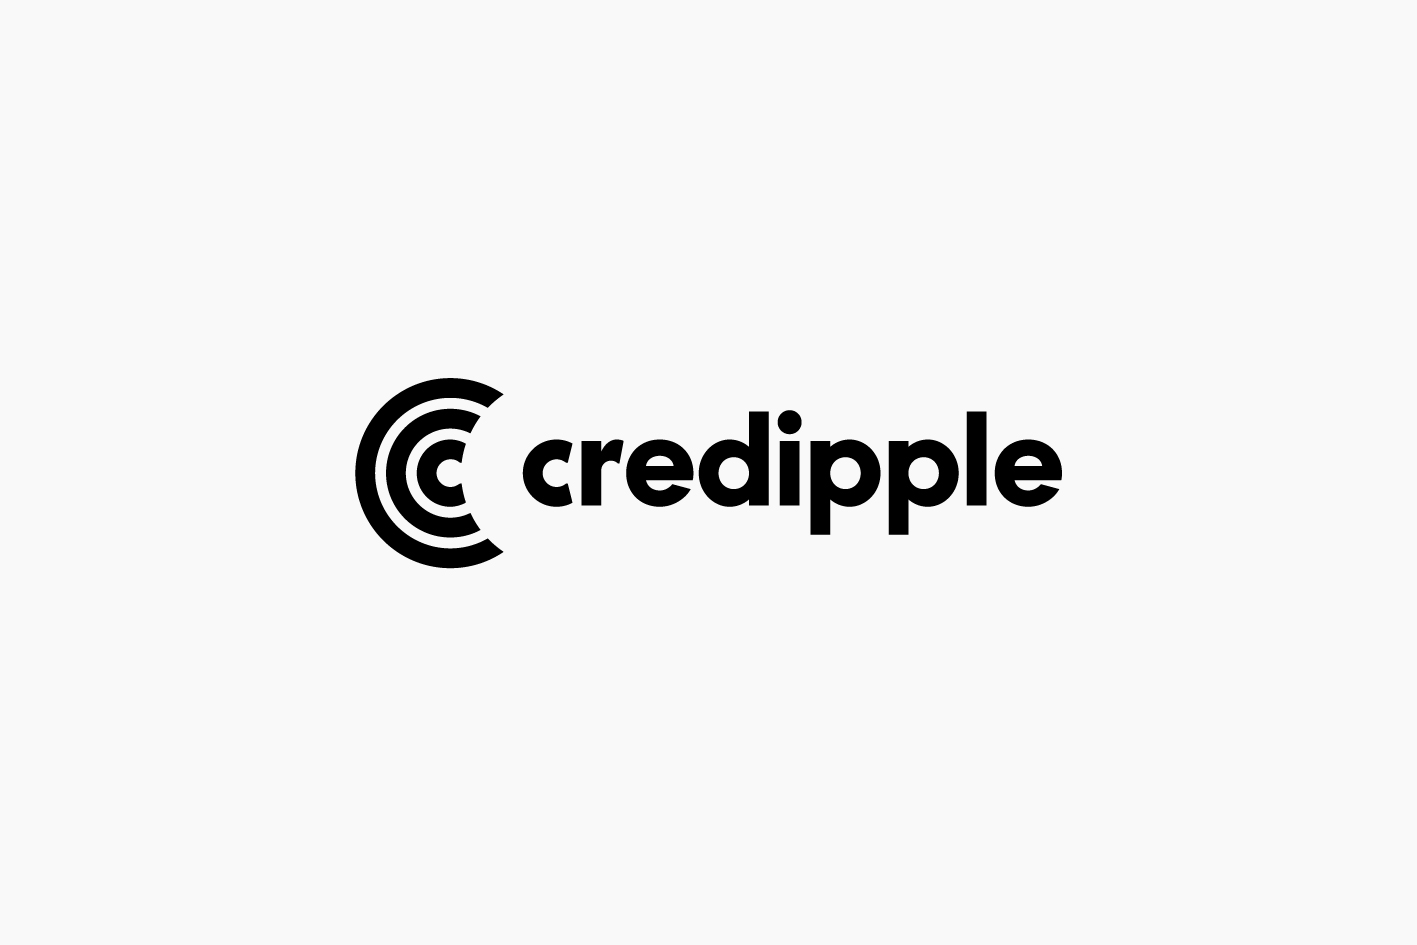 Credipple icon and wordmark